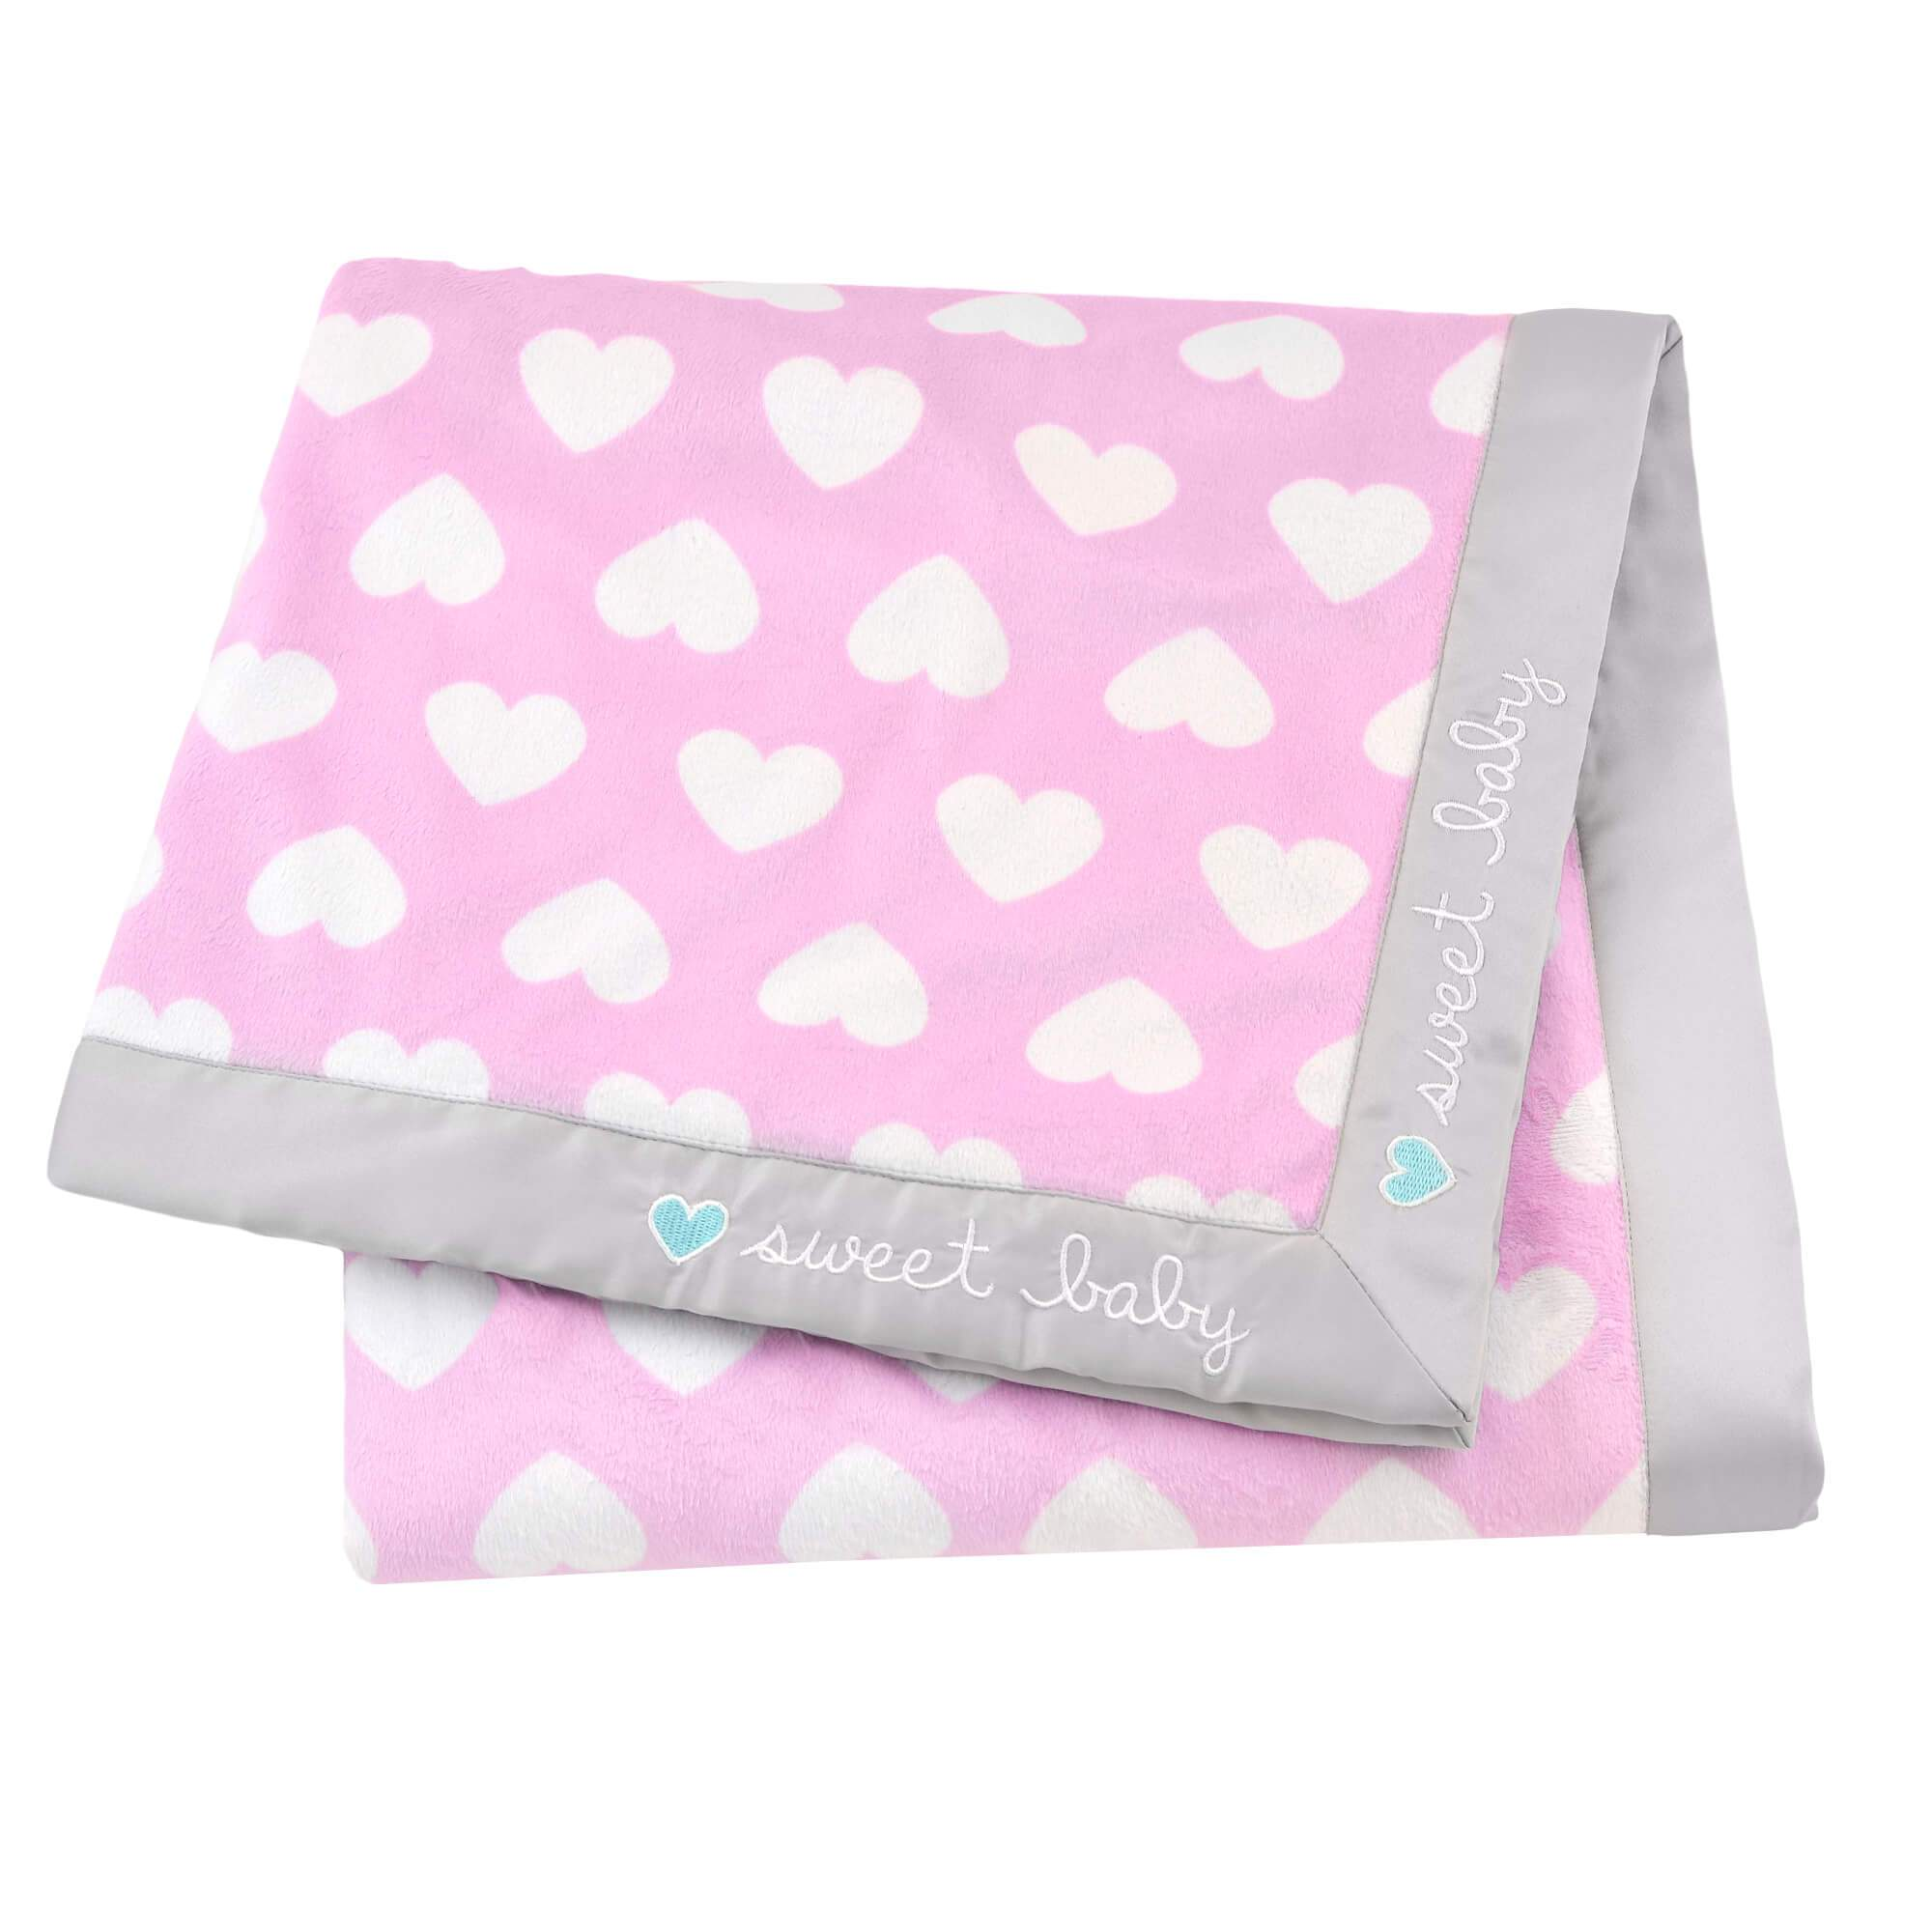 1-Pack Girls Sweet Baby Hearts Plush Blanket-Gerber Childrenswear